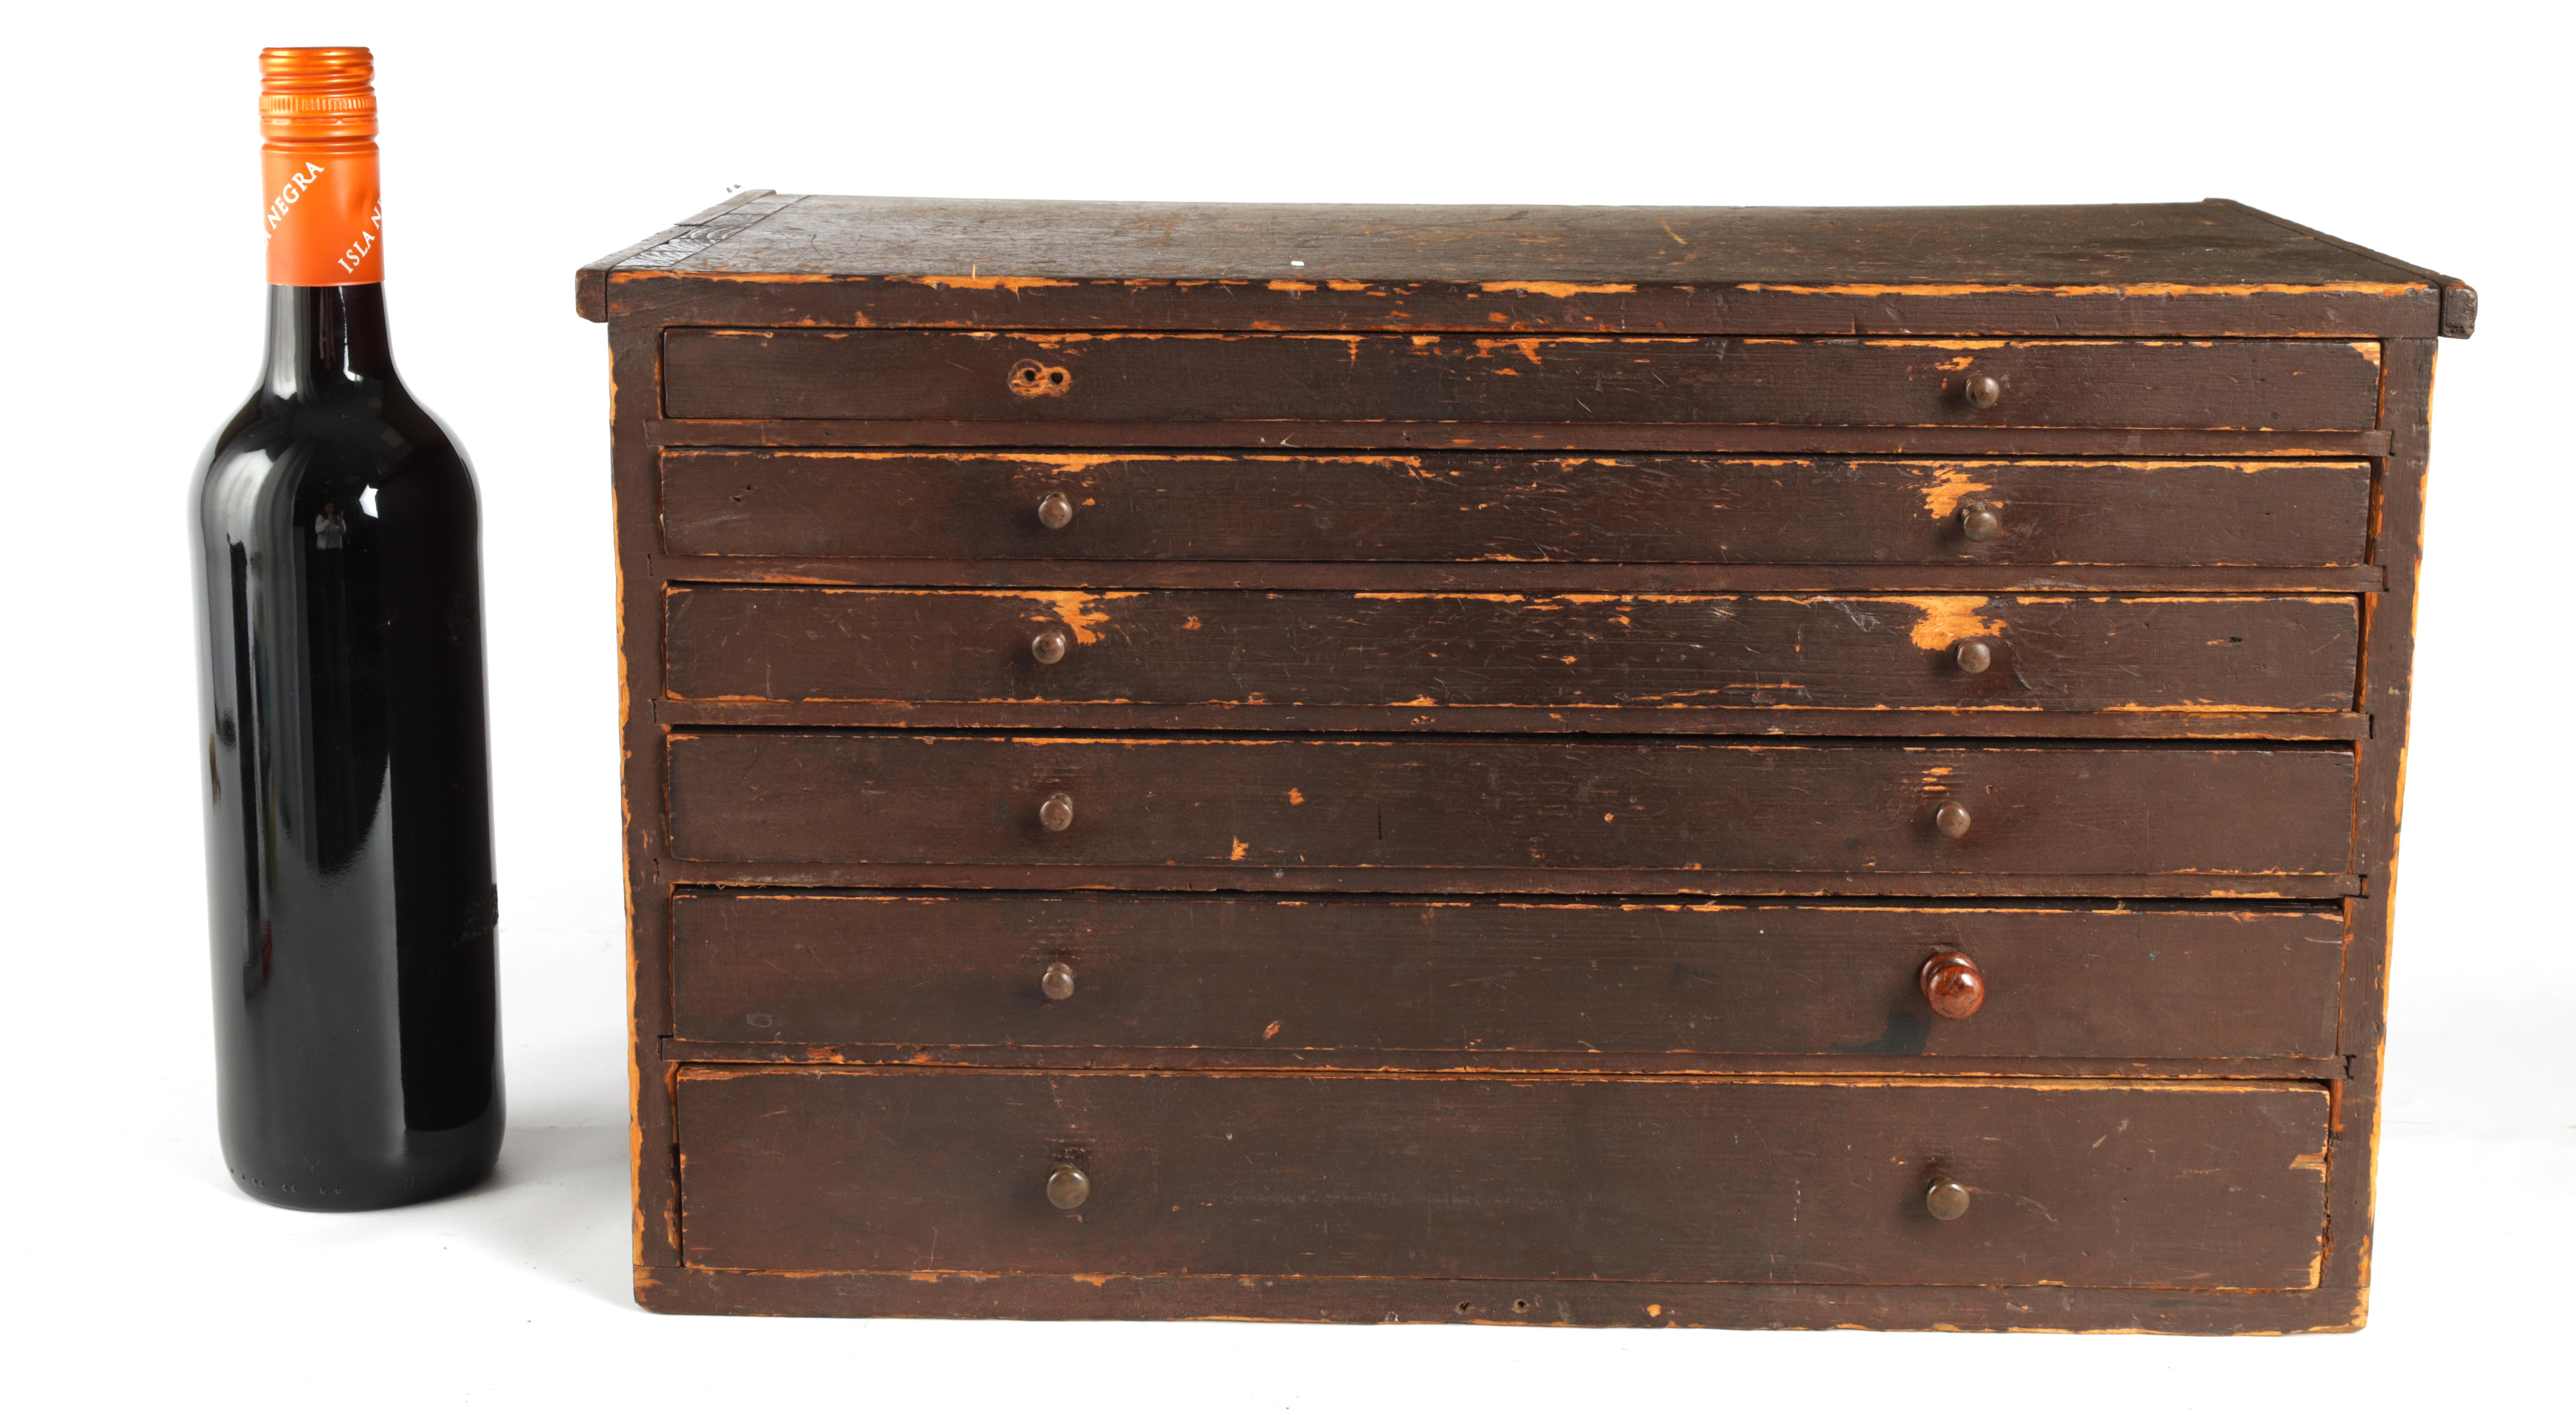 A LARGE COLLECTION OF JEWELERS AND WATCHMAKERS TOOLS contained in a set of pine drawers - Image 3 of 12